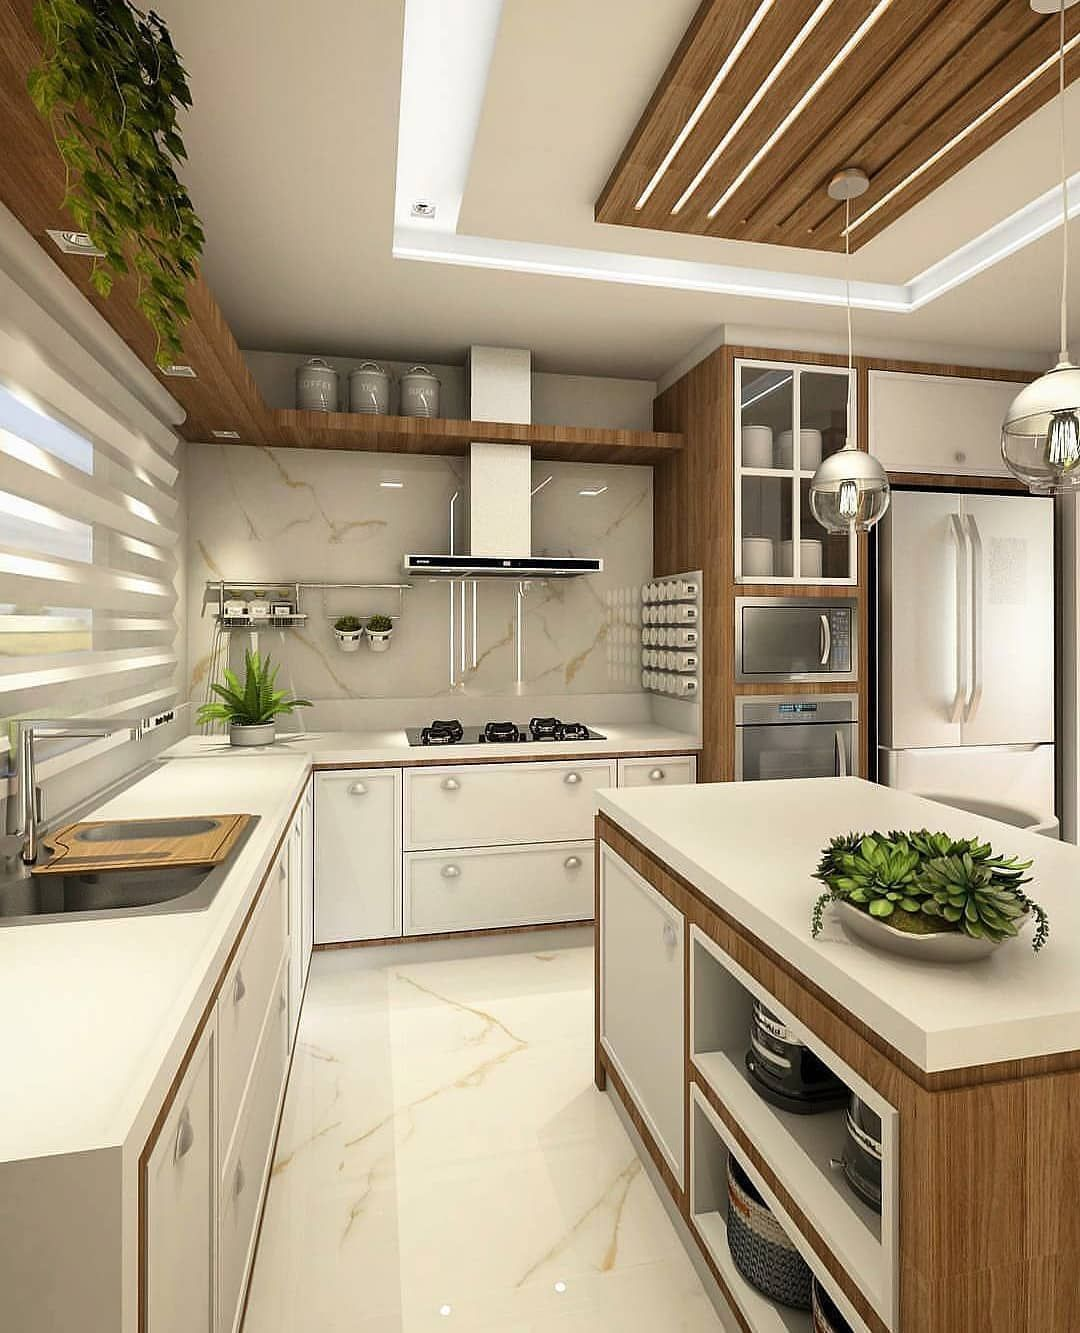 Kitchen Design 2020 Top 5 Kitchen Design Trends 2020 Photo Video